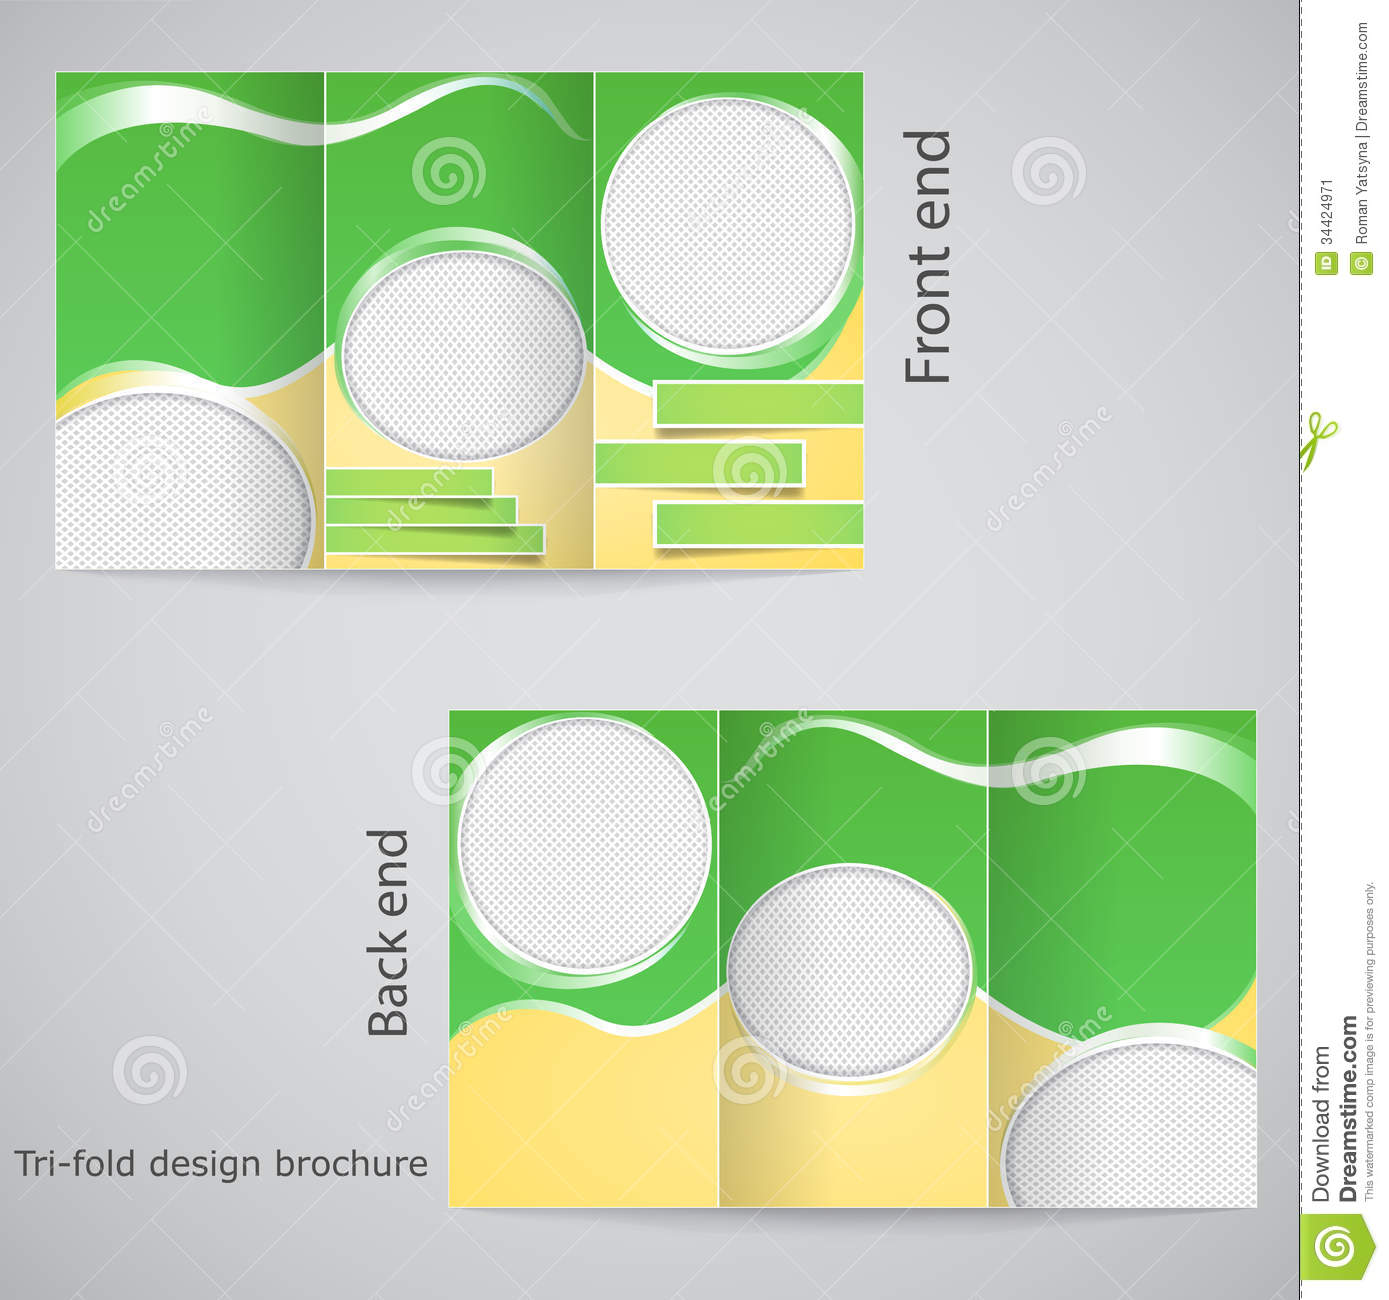 Trifold Brochure Design Stock Vector Illustration Of Fashion - Tri fold brochure design templates